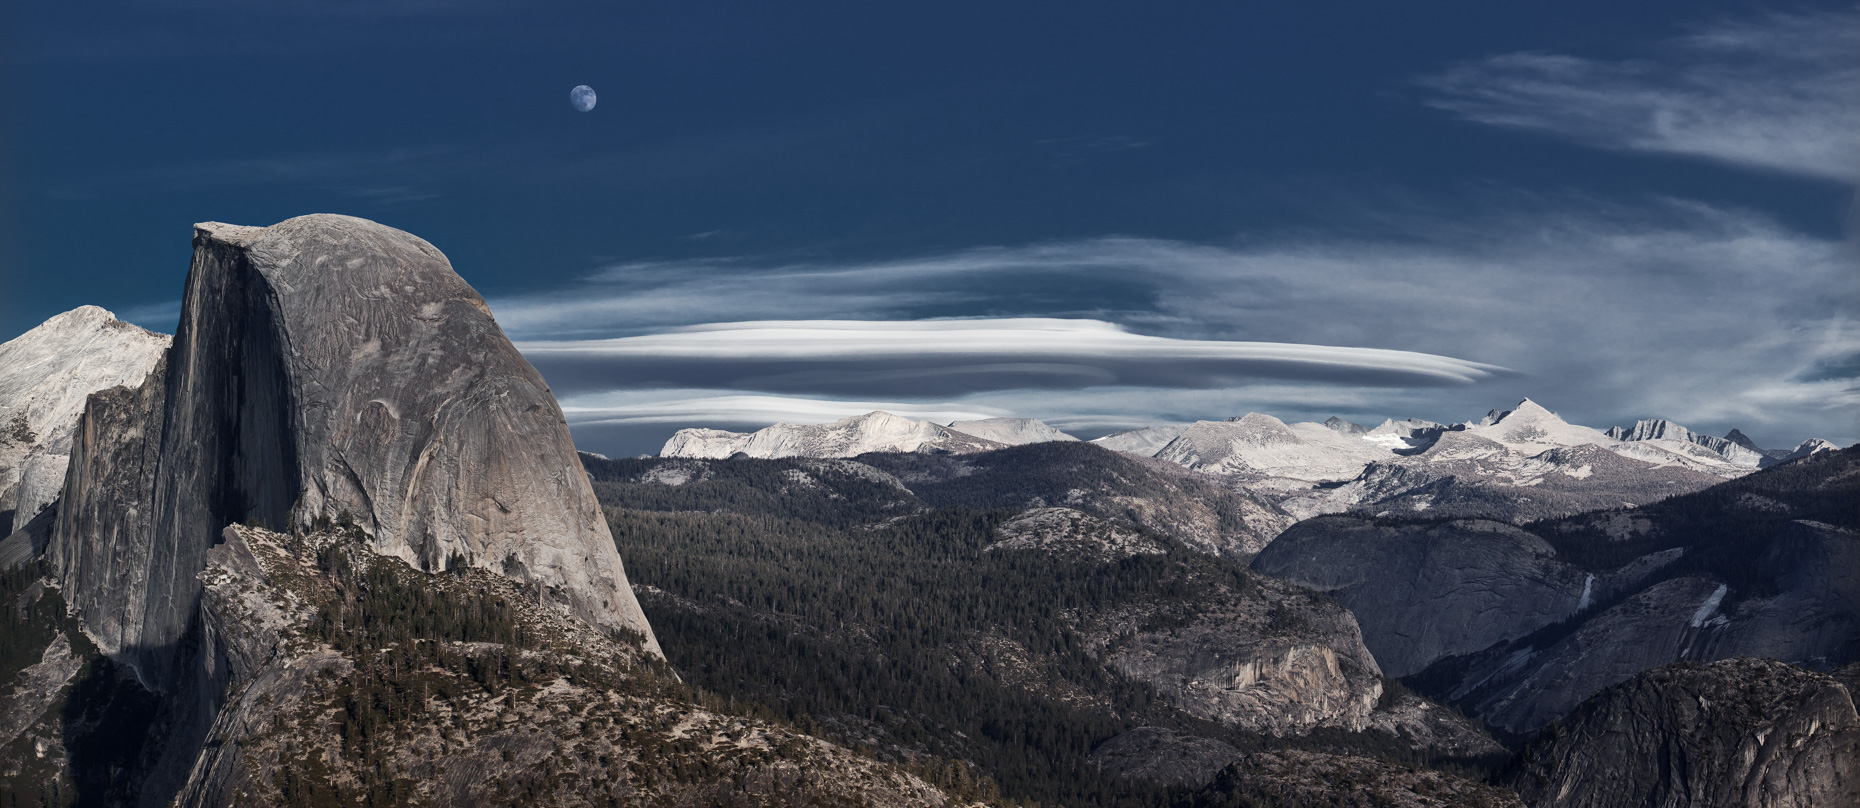 Yosemite_panA1_16bt